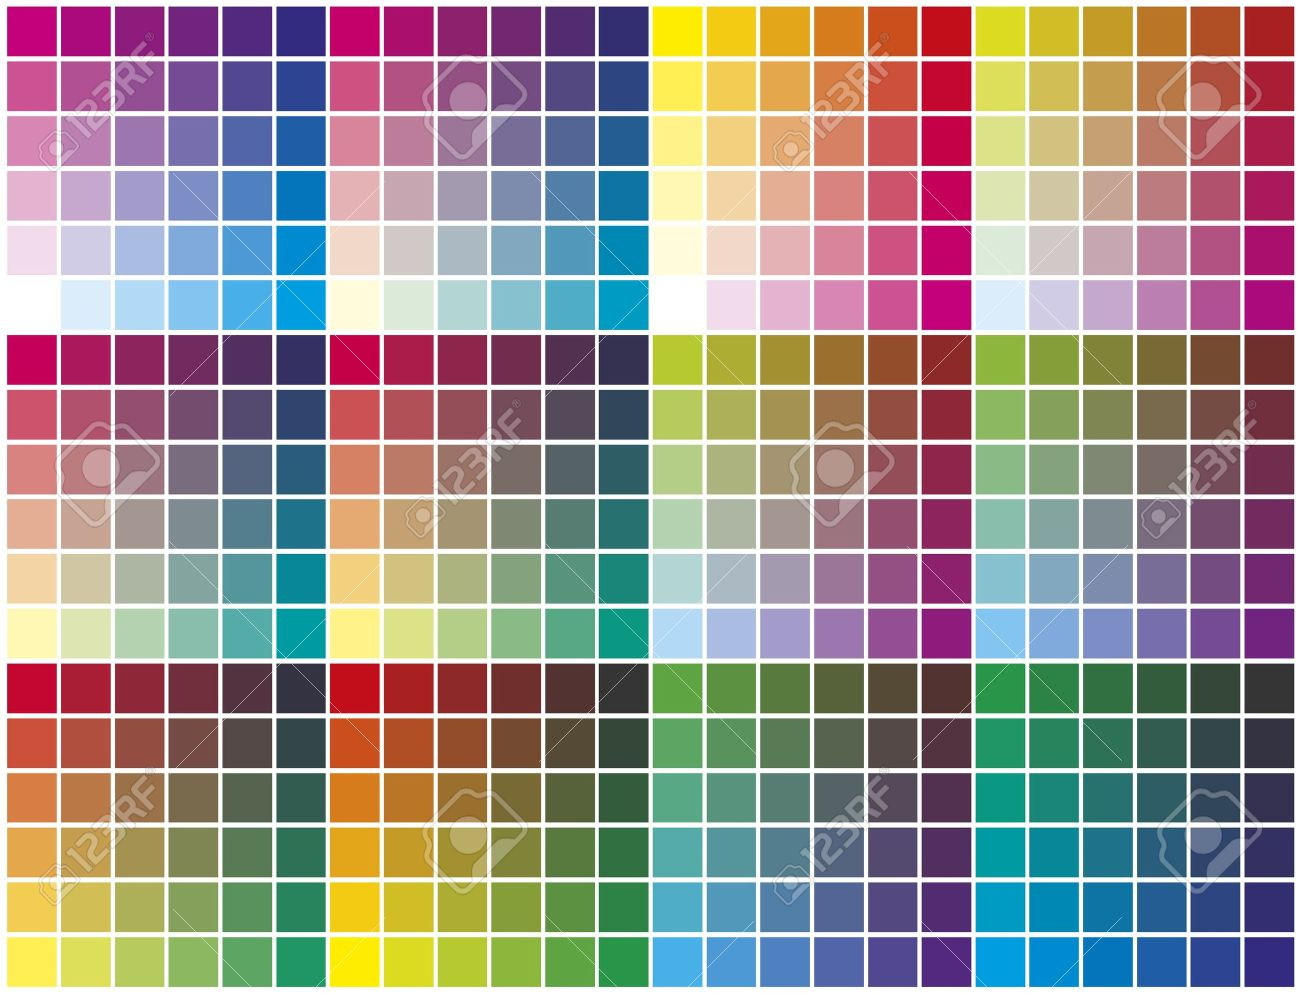 Color palette color chart for prepress printing and calibration color palette color chart for prepress printing and calibration business stock vector 12185321 geenschuldenfo Image collections